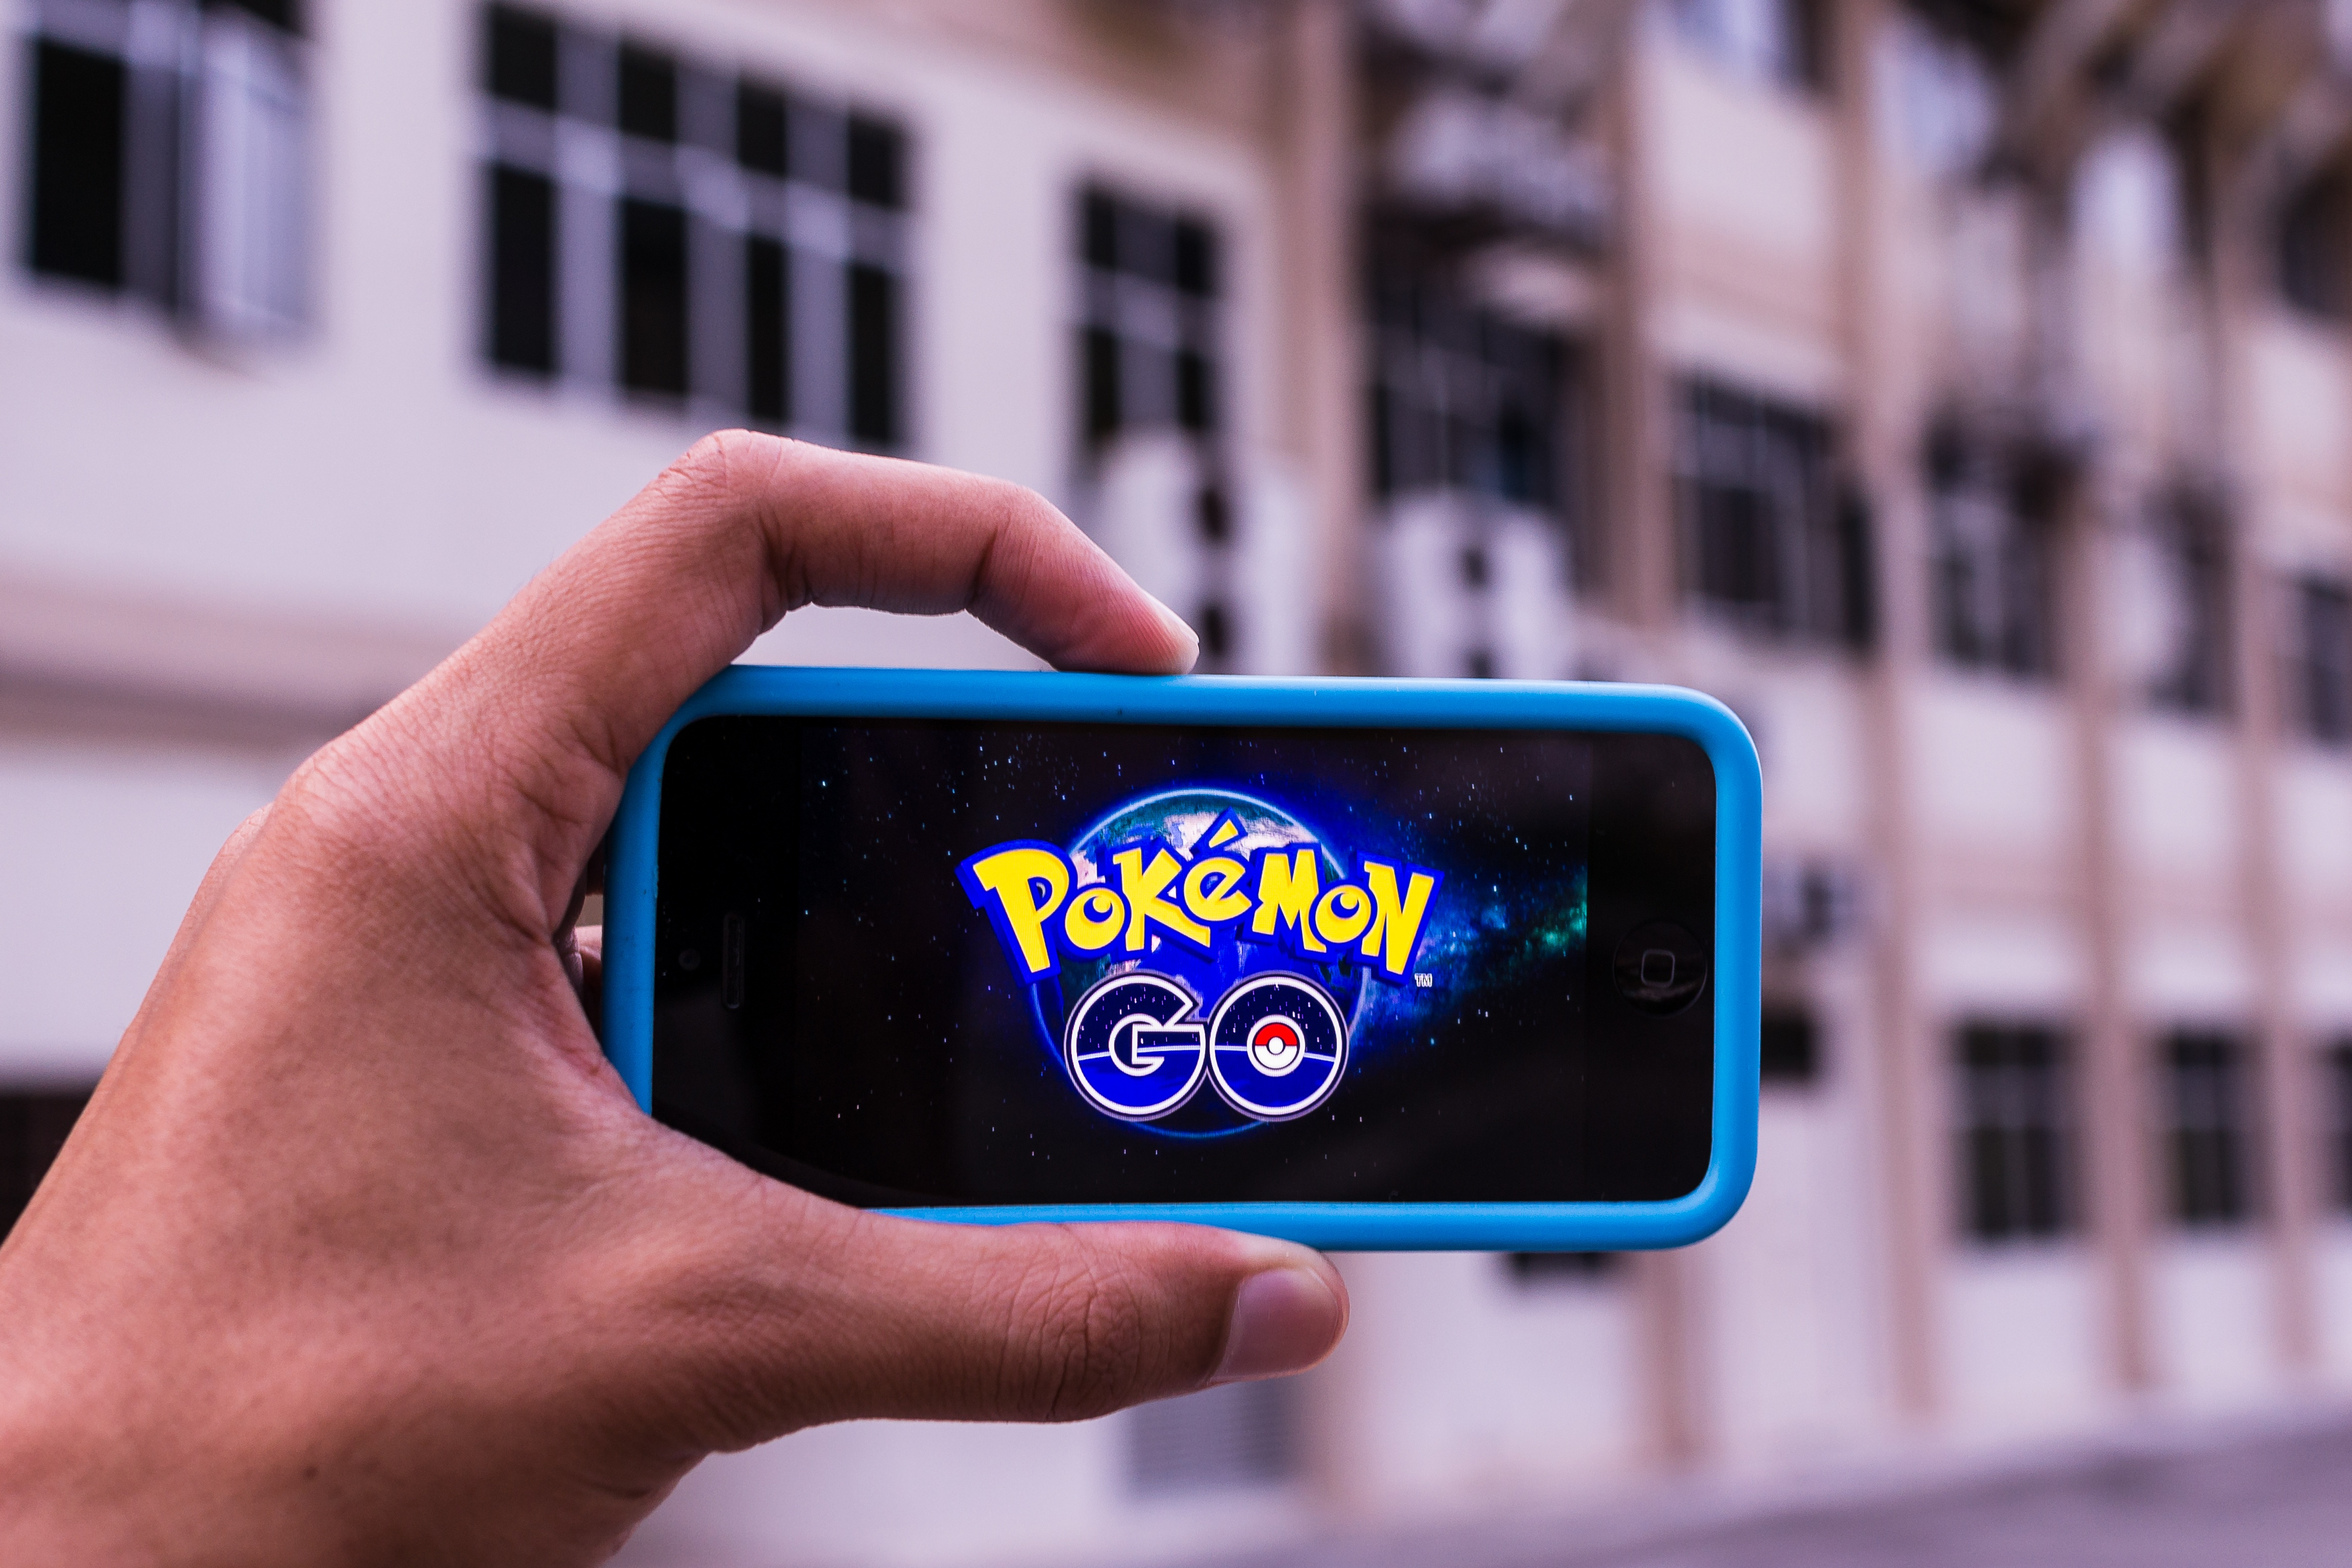 Pokémon Go! the next big marketing disruptor or just a gaming fad?